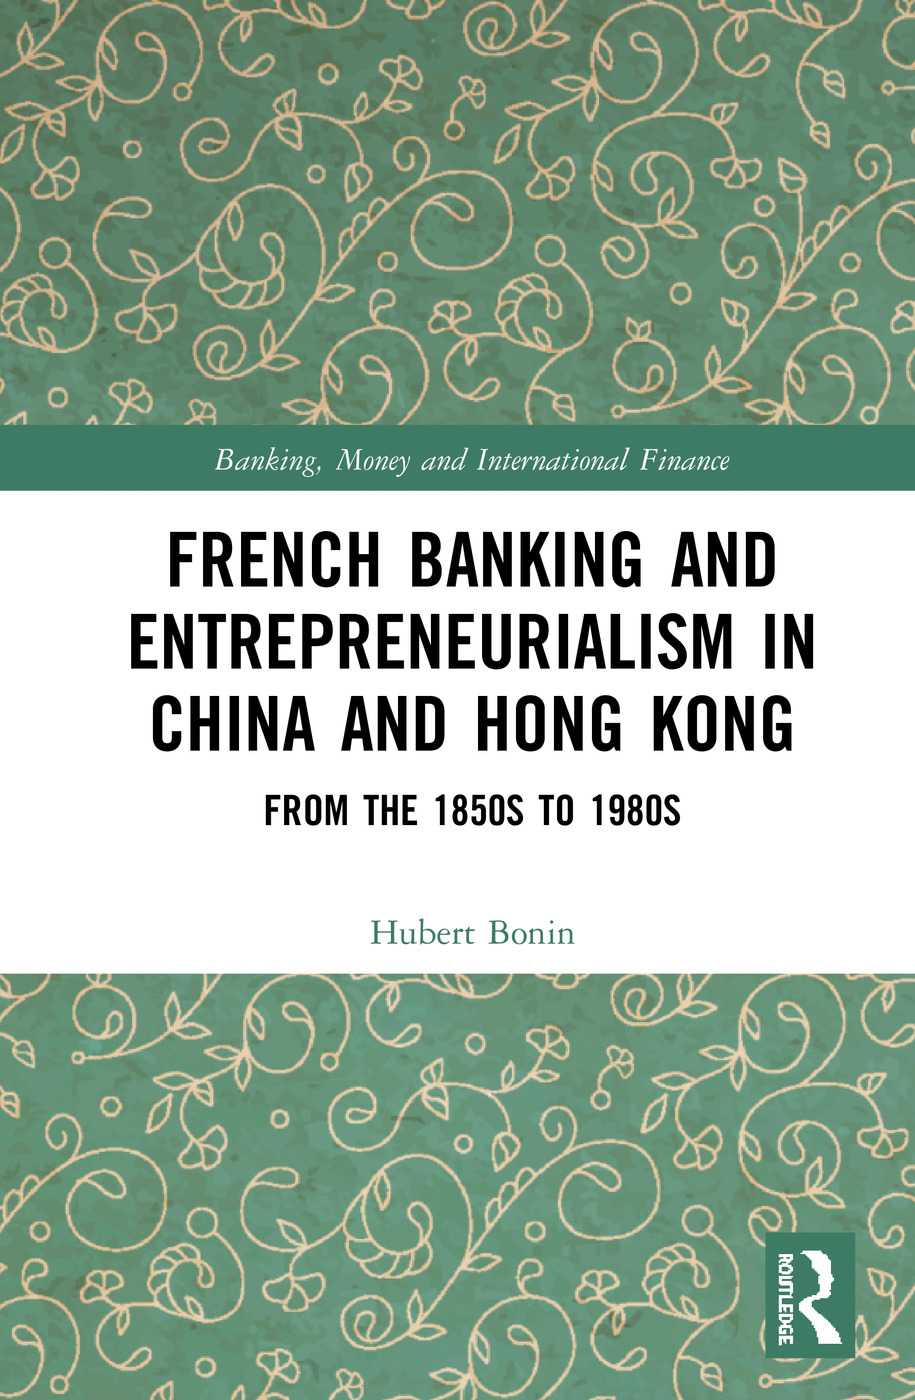 French Banking and Entrepreneurialism in China and Hong Kong: From the 1850s to 1980s book cover